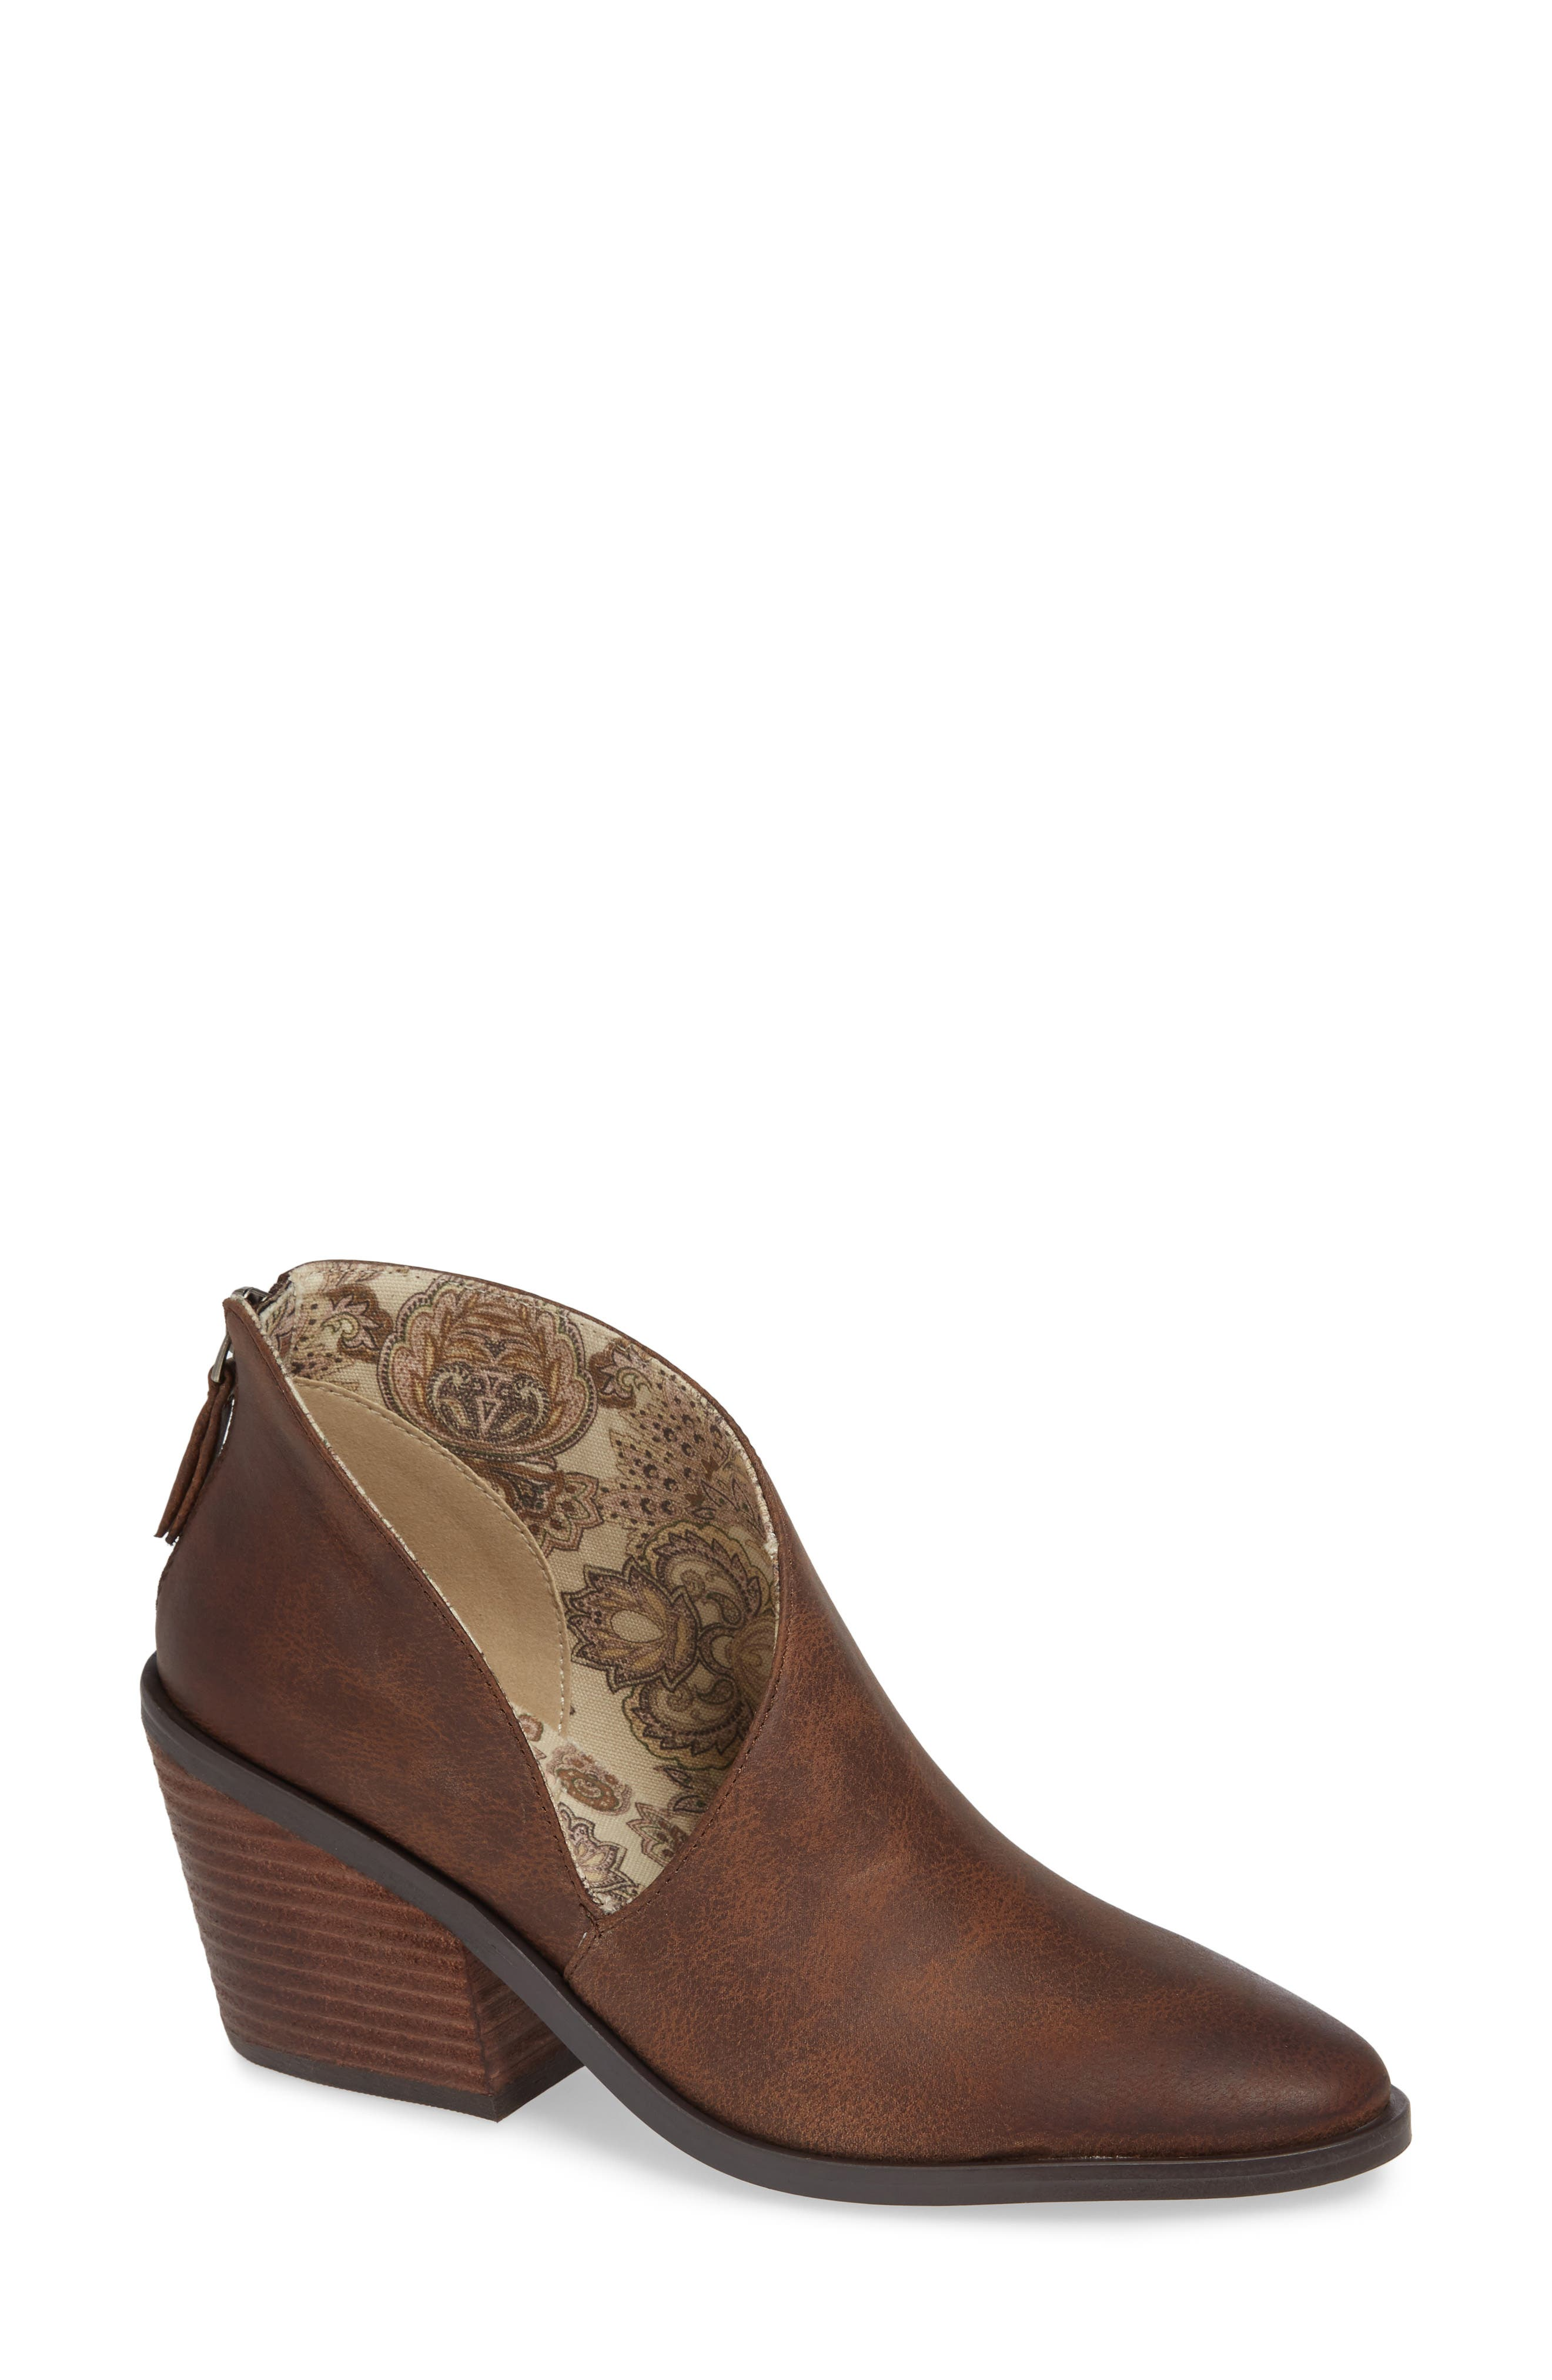 BAND OF GYPSIES Tusk Bootie in Brown Faux Leather